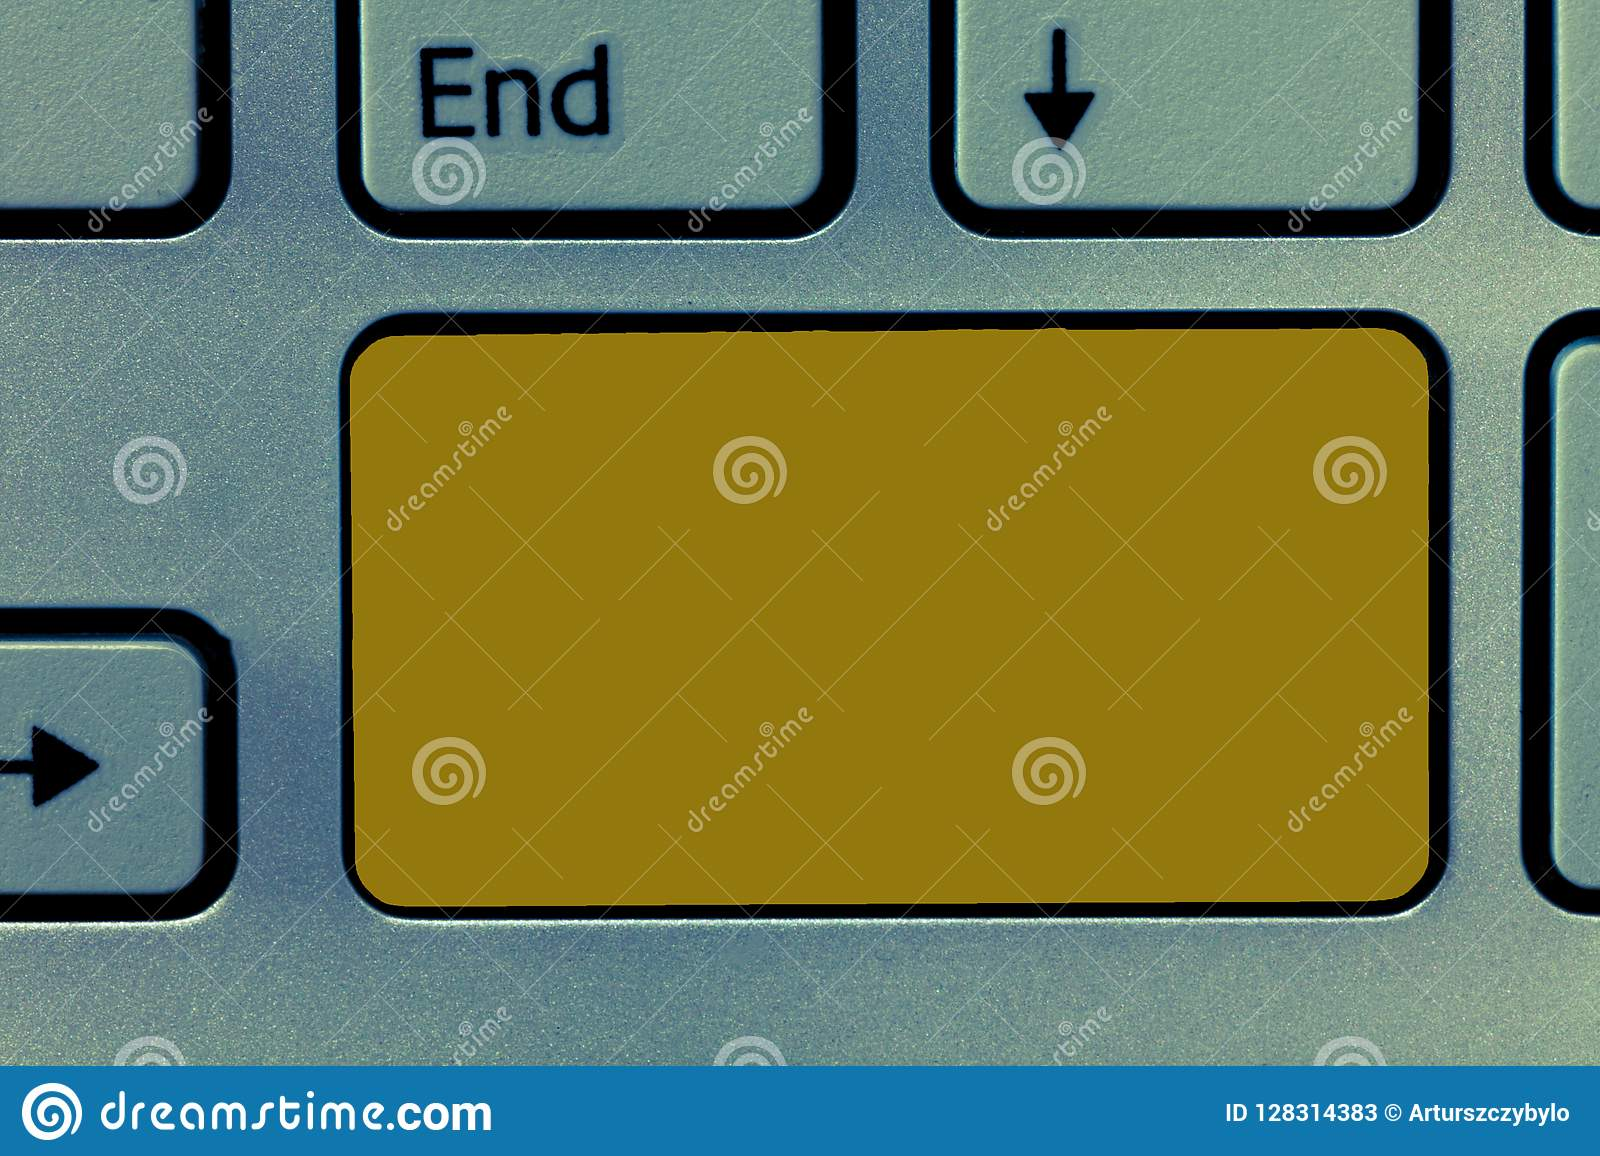 Design business concept Empty copy space modern abstract background Keyboard key Intention to create computer message